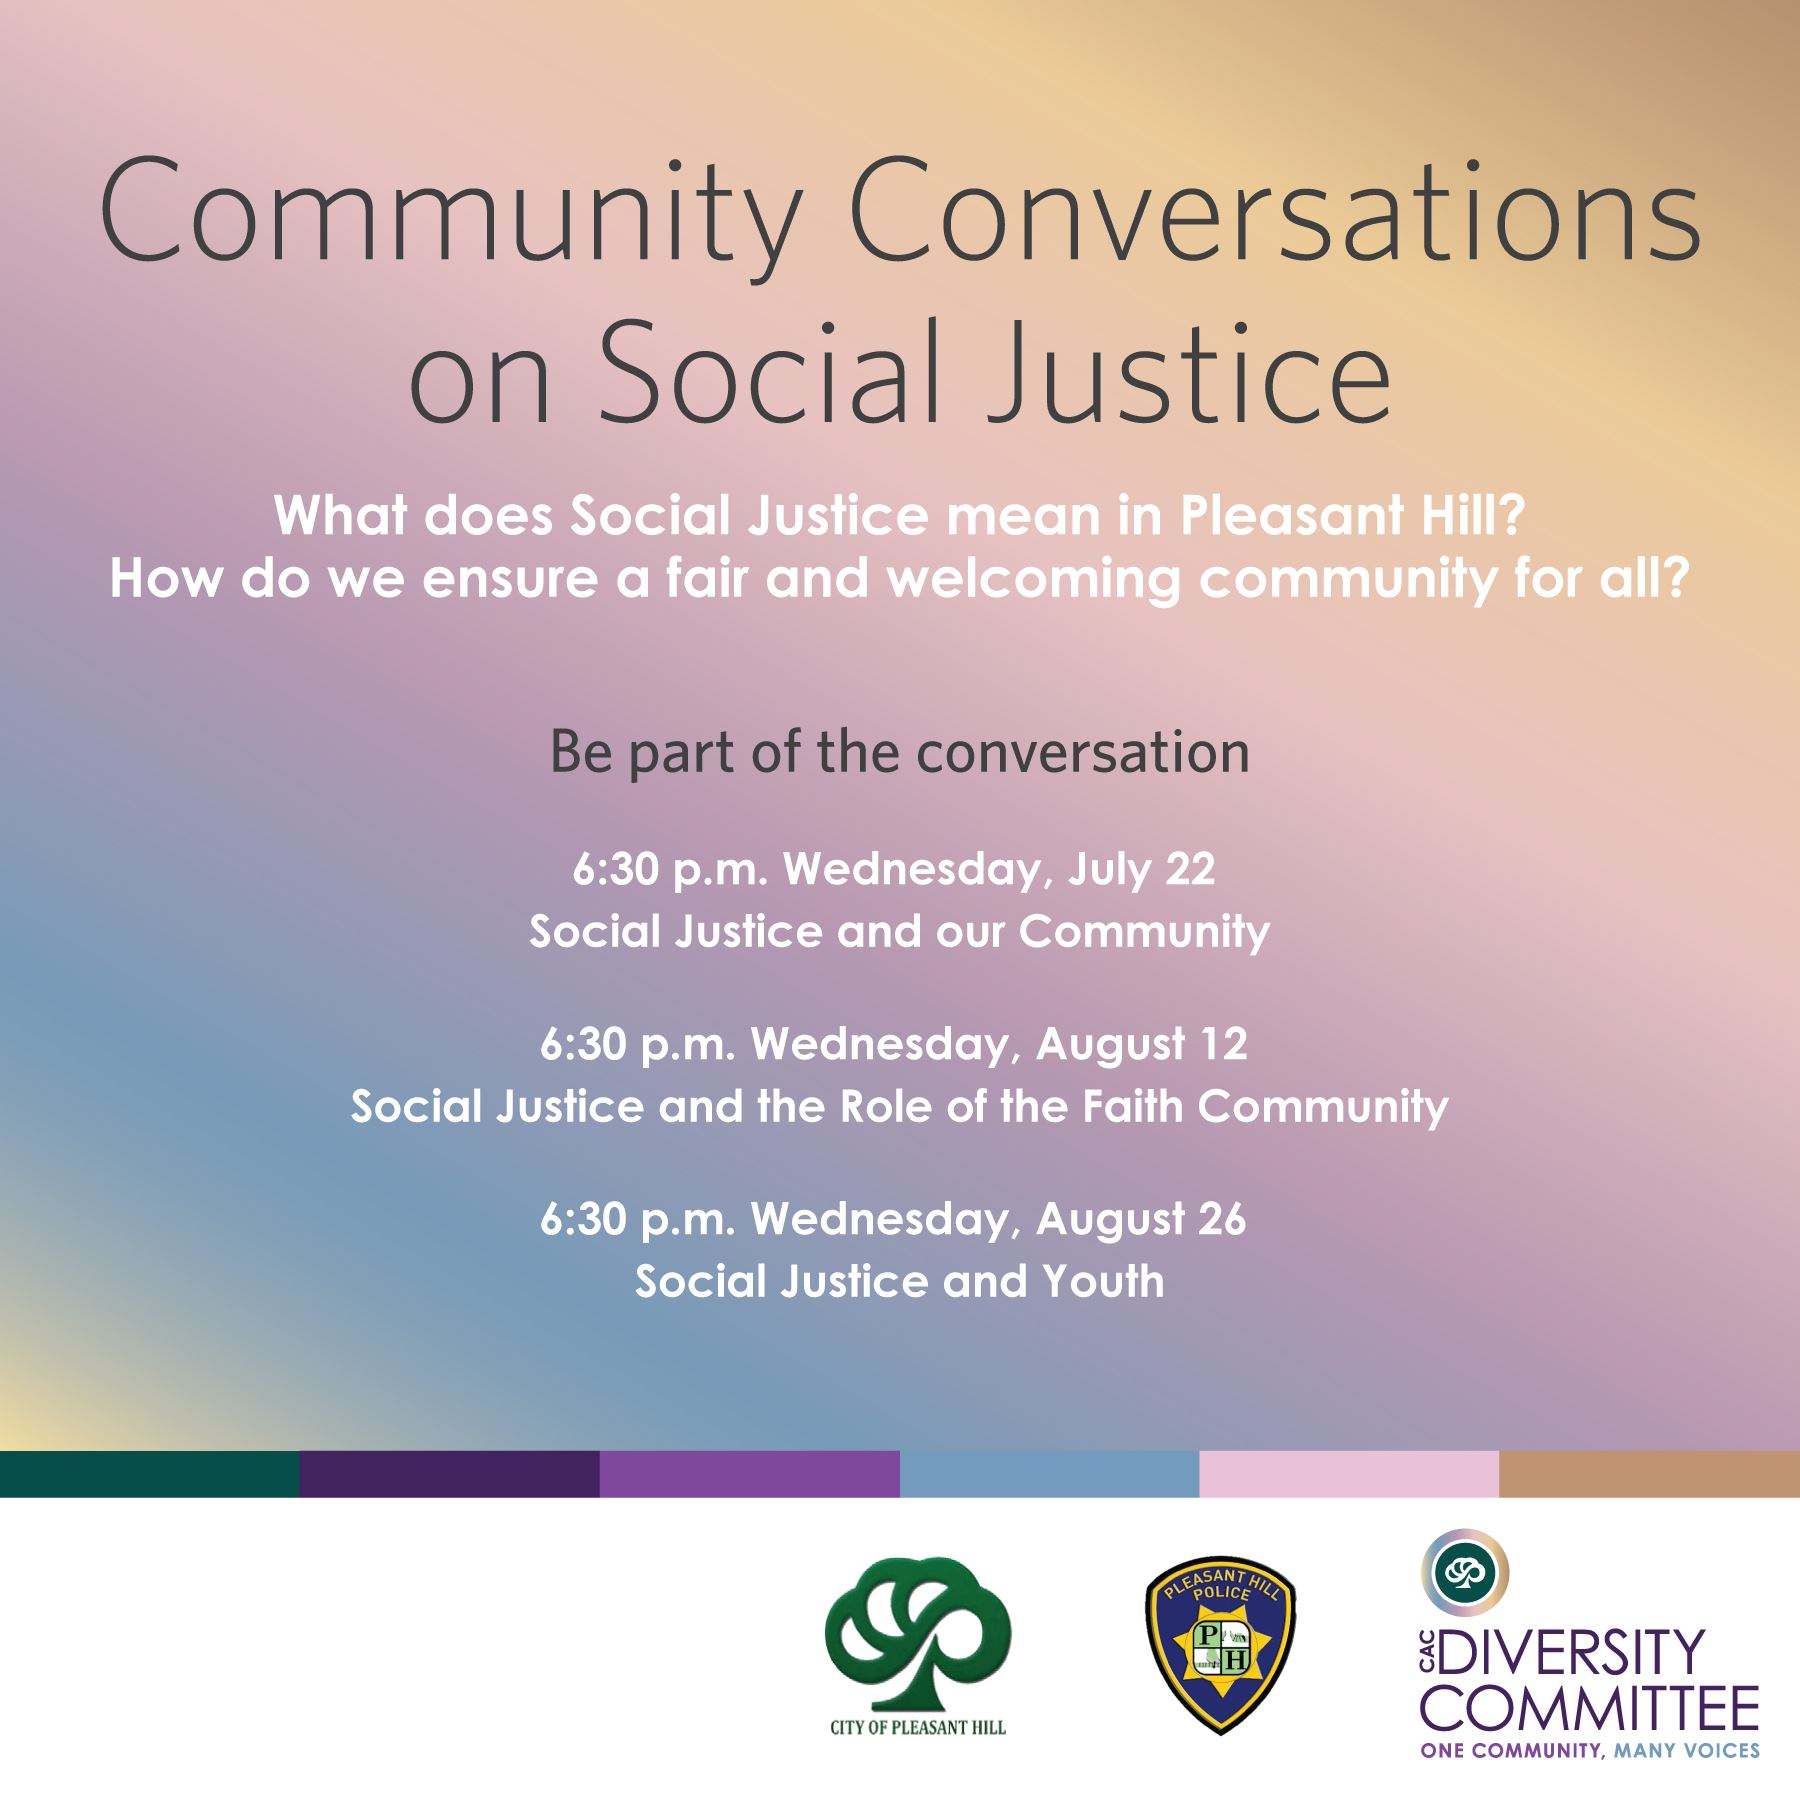 Community Conversations on Social Justice